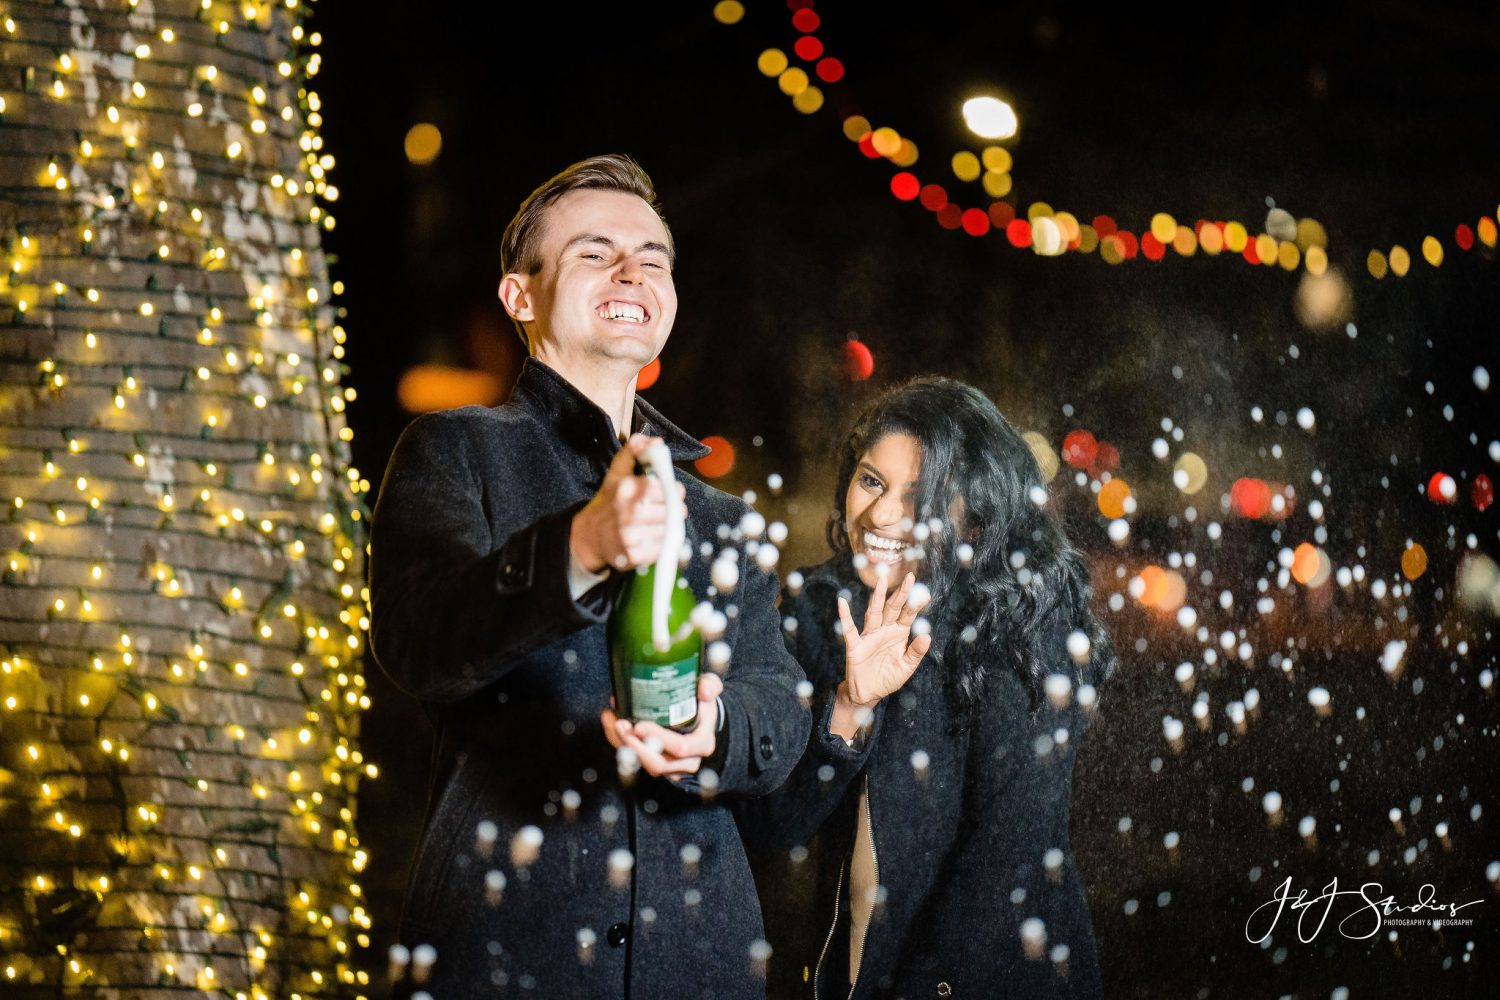 Popping bottles during Franklin Square Surprise Proposal